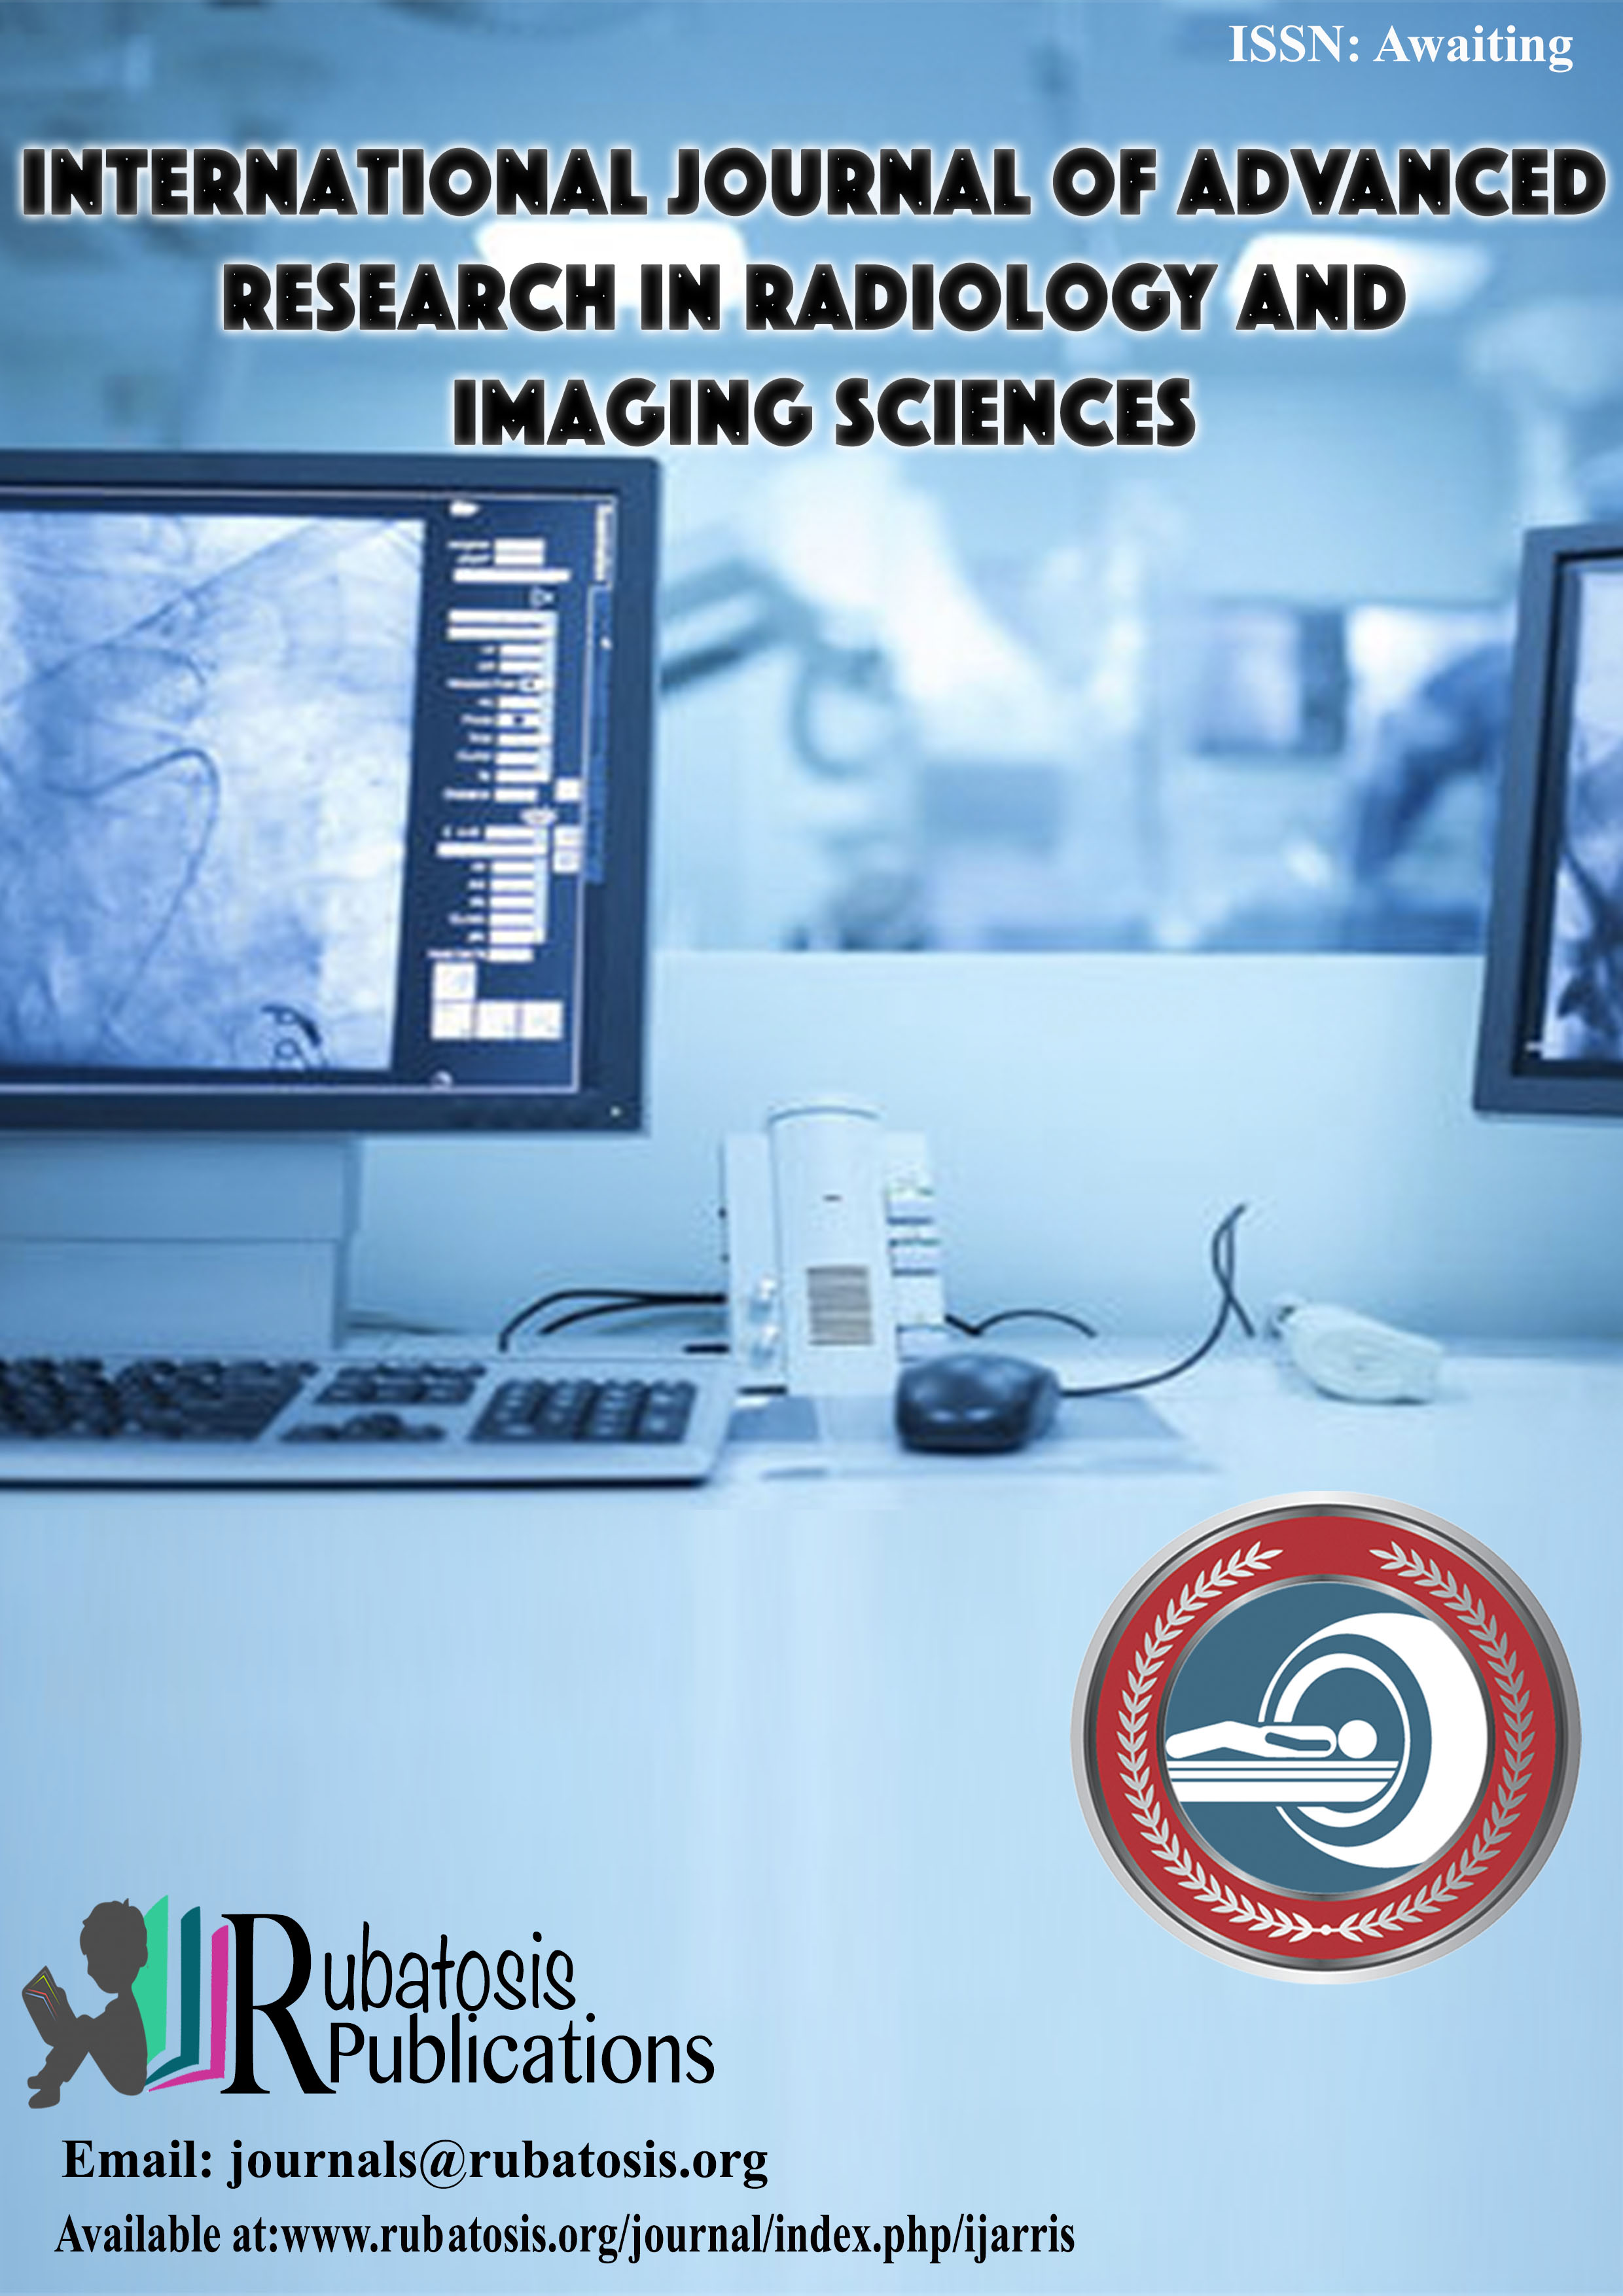 International Journal Of Advanced Research In Radiology And Imaging Sciences